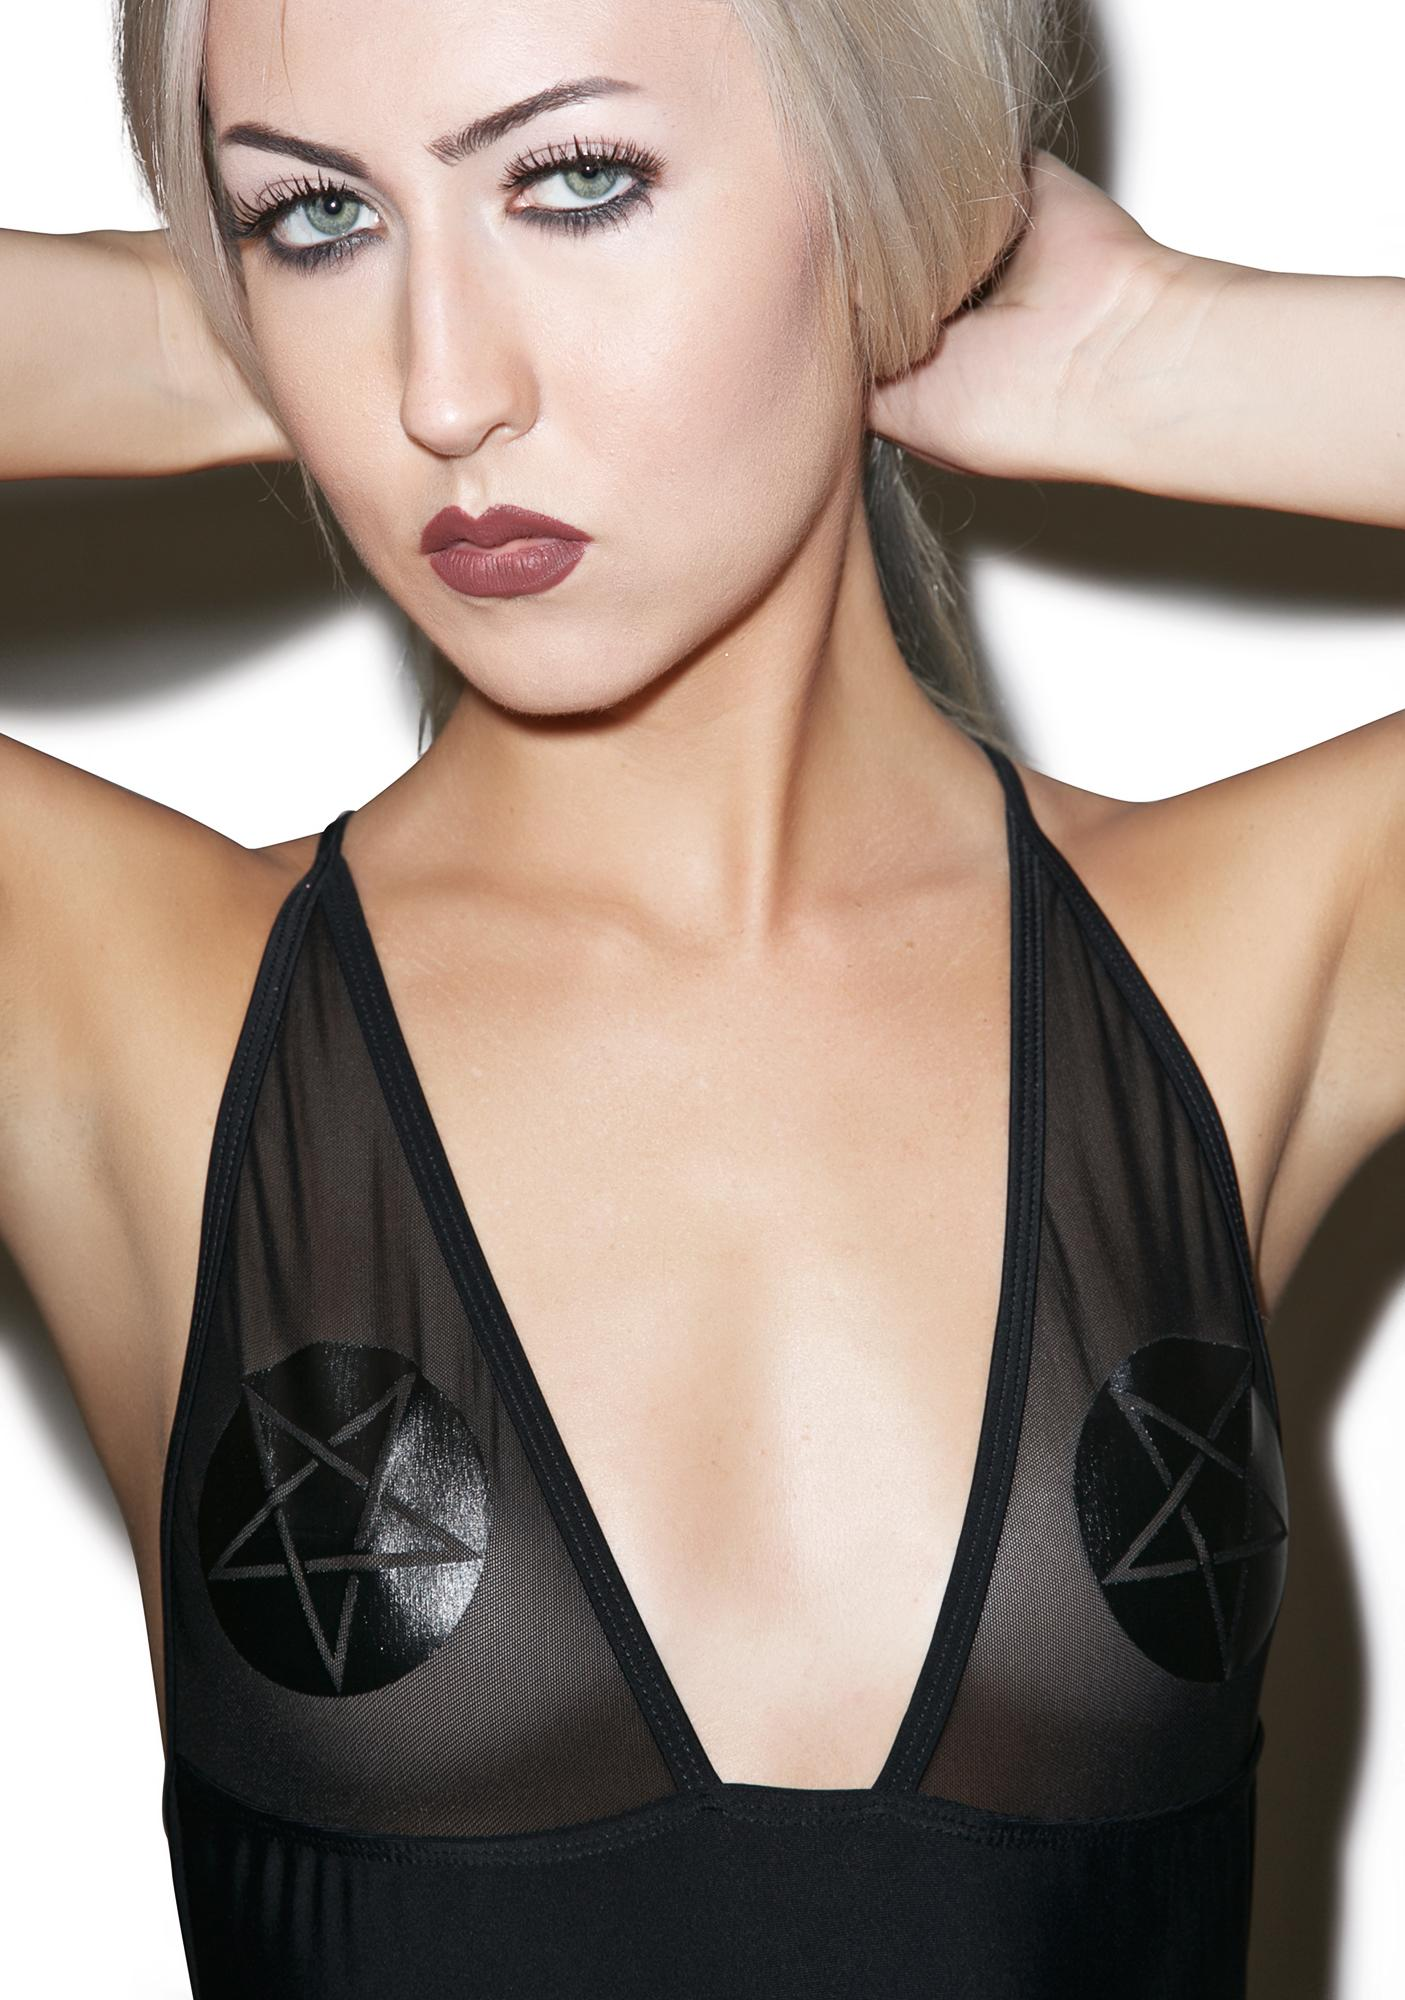 Disturbia x Dolls Kill Intentions One Piece Swimsuit